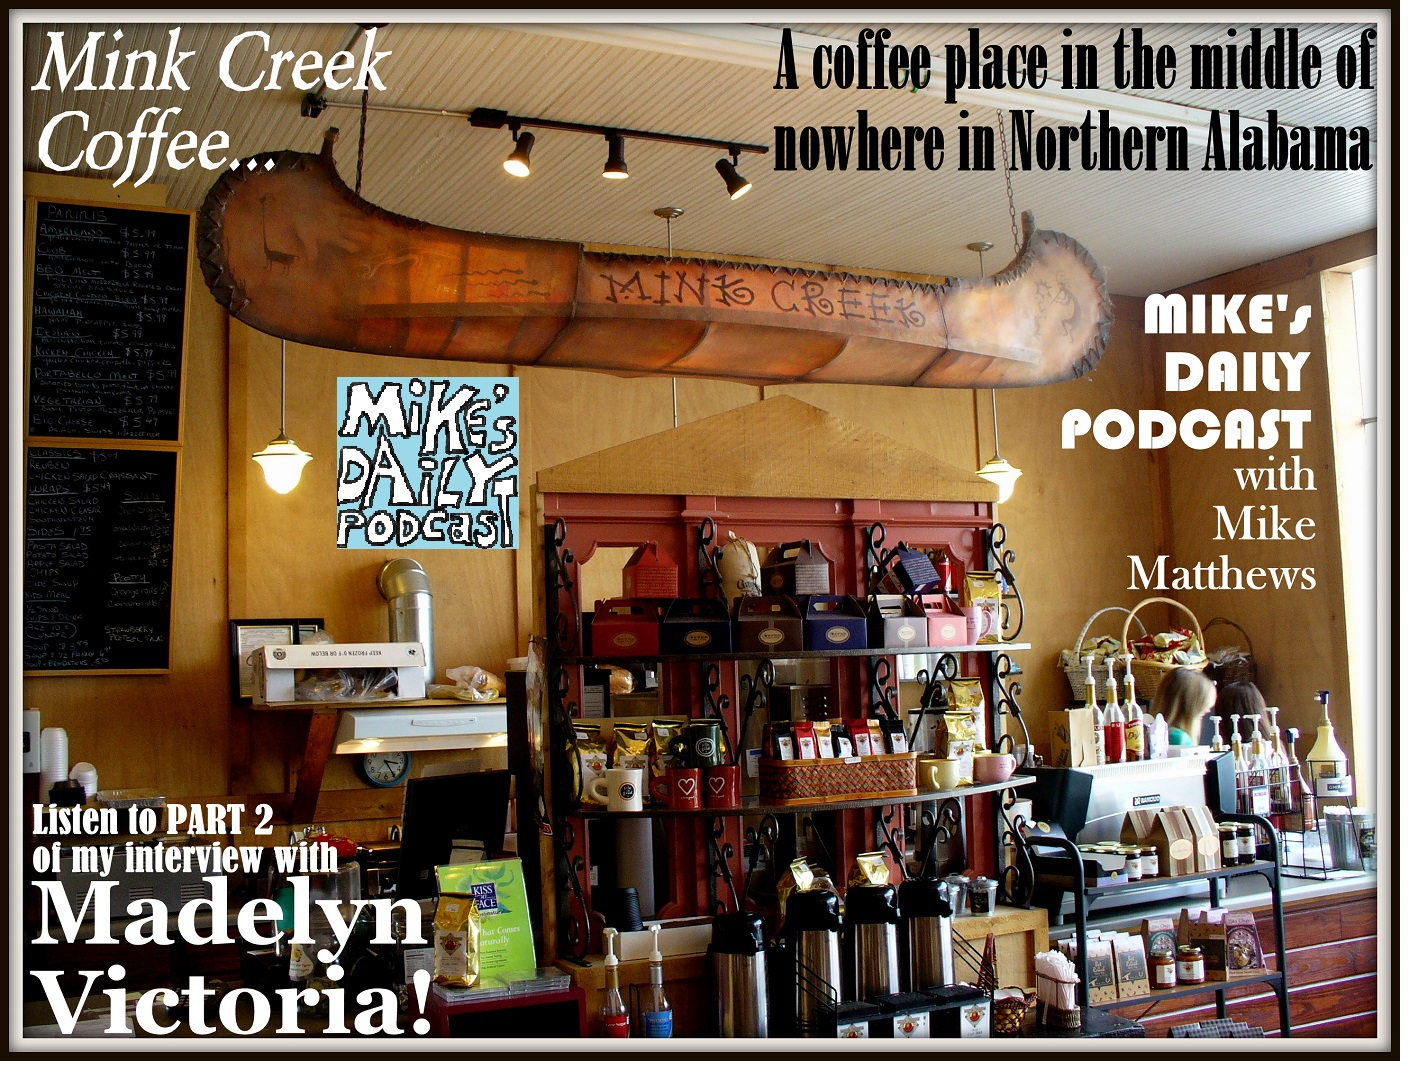 MIKEs DAILY PODCAST 964 Mink Creek Coffee Alabama